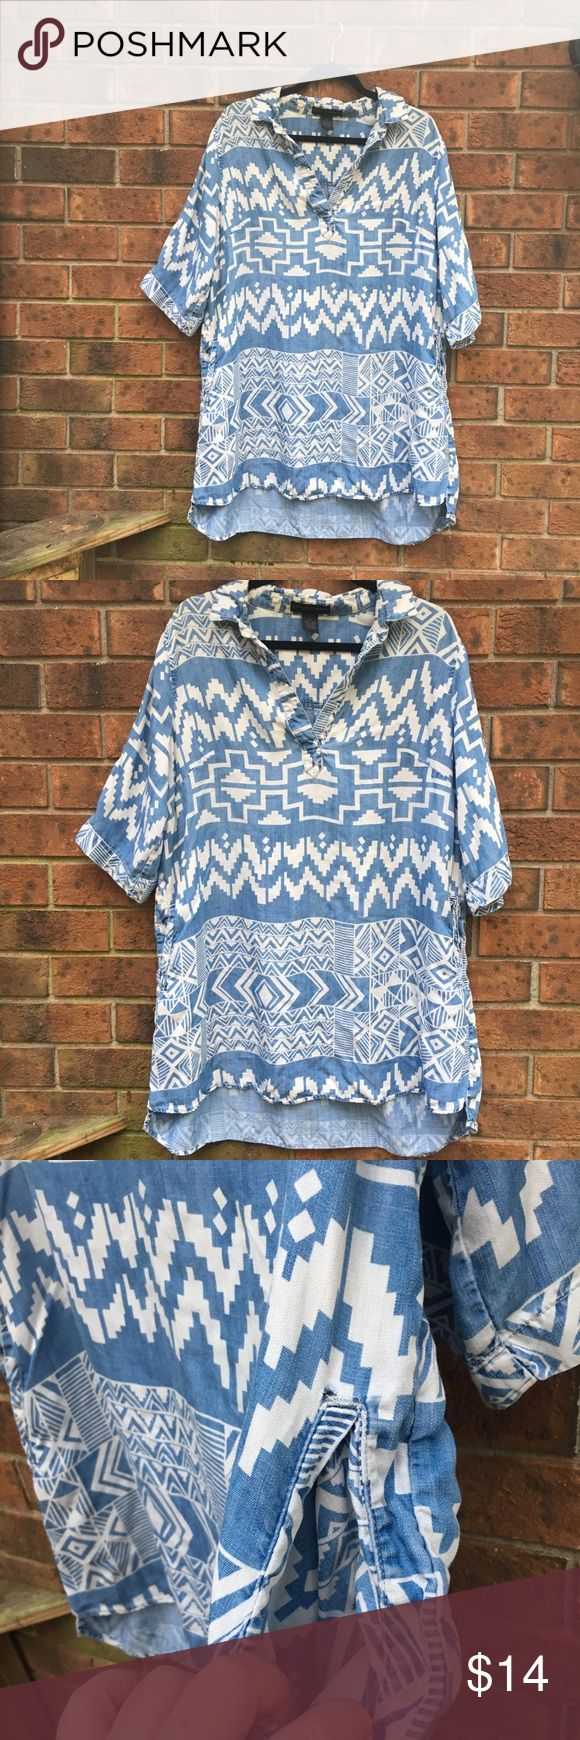 Aztec print tunic with pockets Long t shirt tunic with pockets! In warmer weather, it could totally be a short dress! No signs of wear, perfect to pair with leggings and boots. Grace Elements Tops Tunics